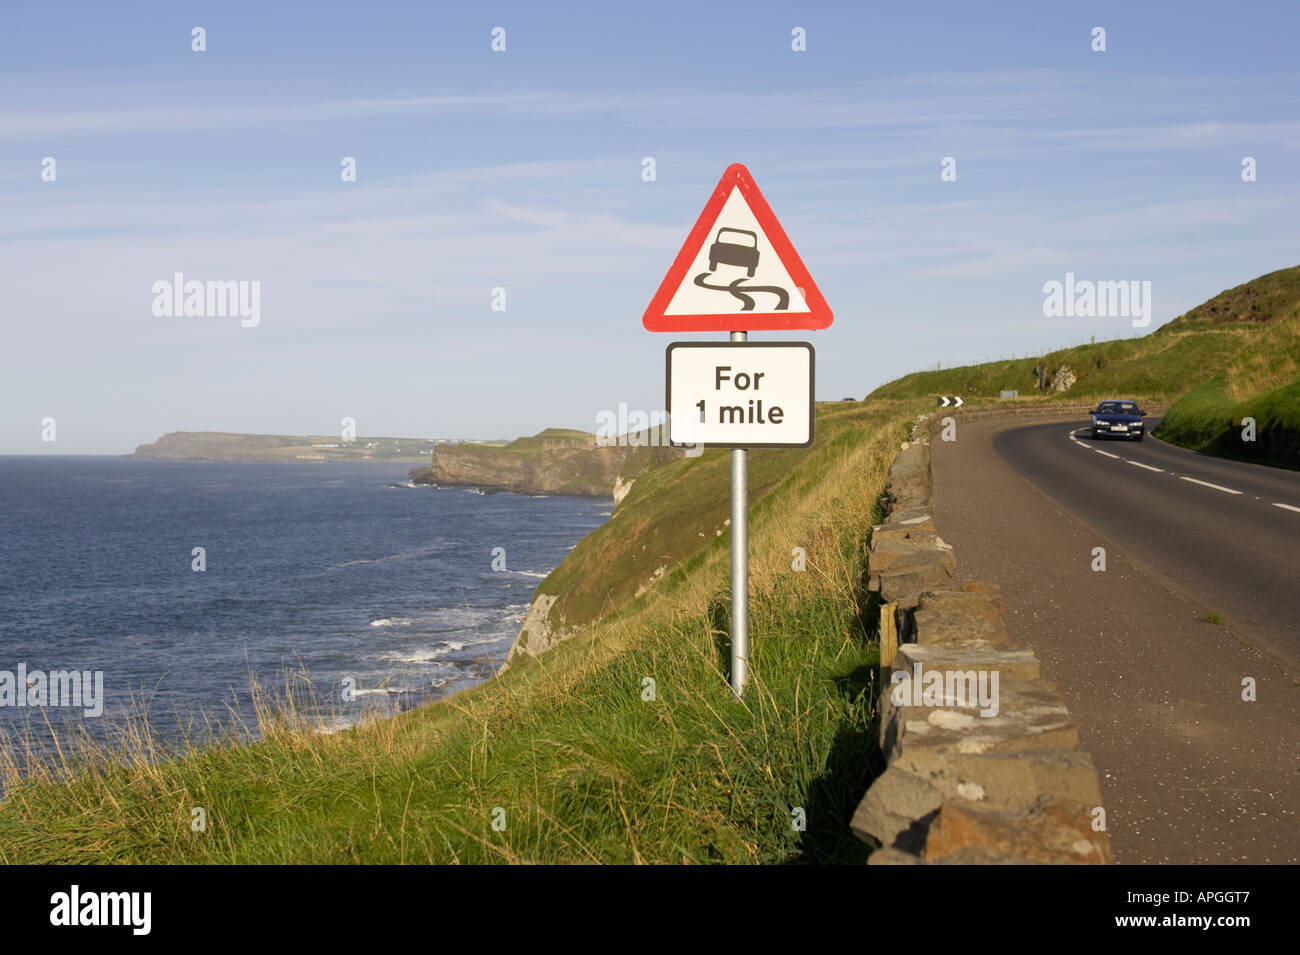 triangular red lined slippery road for one mile warning road sign on cliff on the A2 coast road with Dunluce Castle and sea - Stock Image